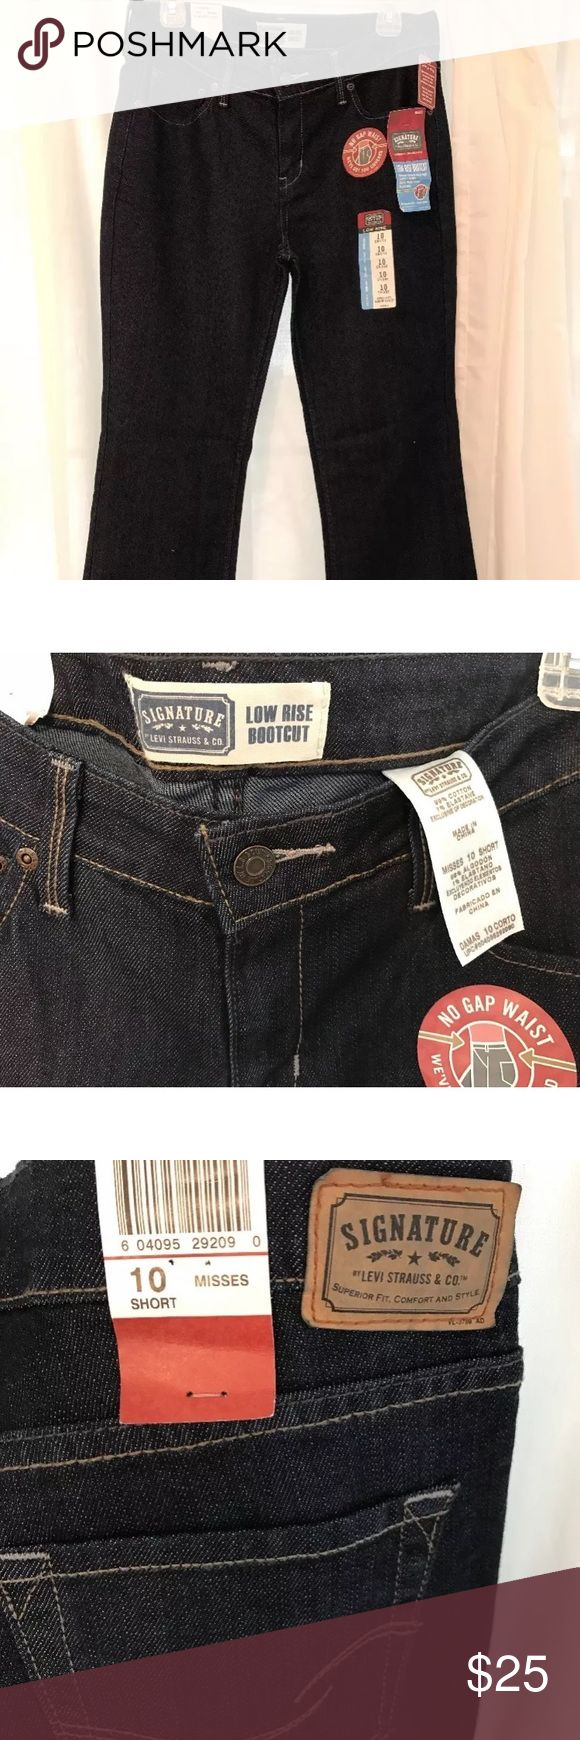 Levi Strauss Women's Low Rise Bootcut Jeans Levi Strauss Women's Low Rise Bootcut Jeans. Misses. Size 10/short. New with tags! Levi's Jeans Boot Cut